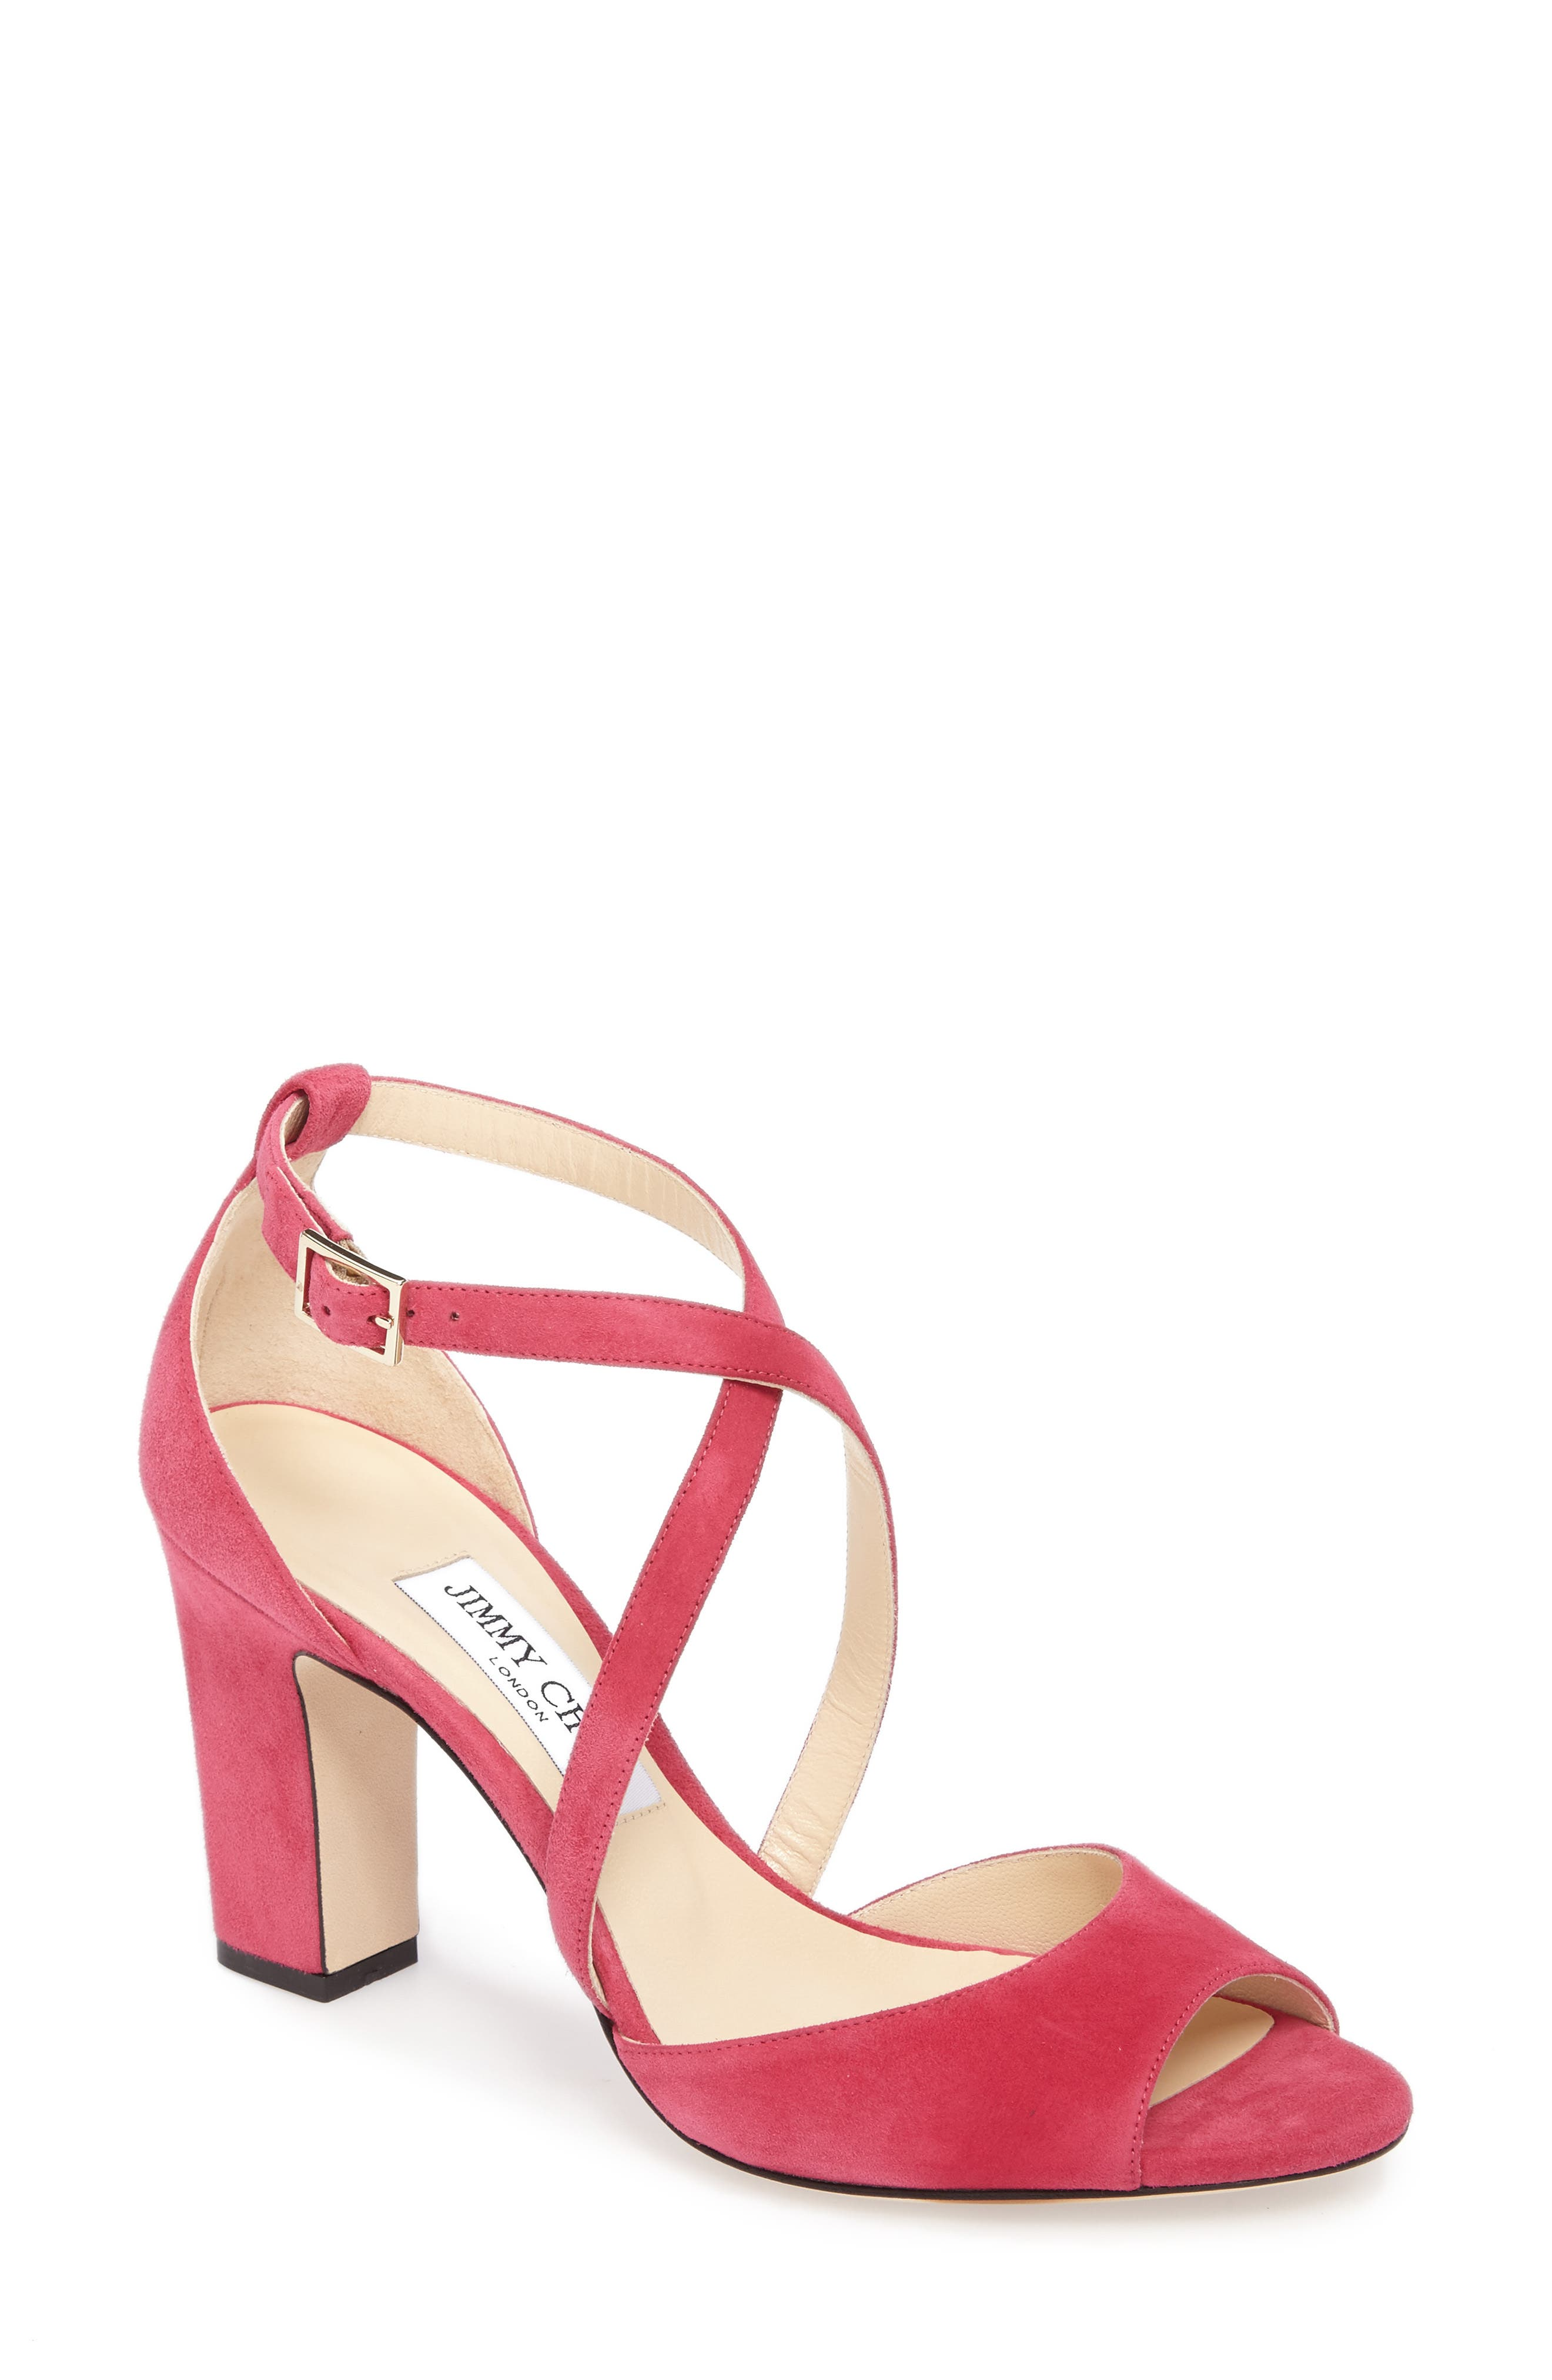 Main Image - Jimmy Choo Carrie Sandal (Women)